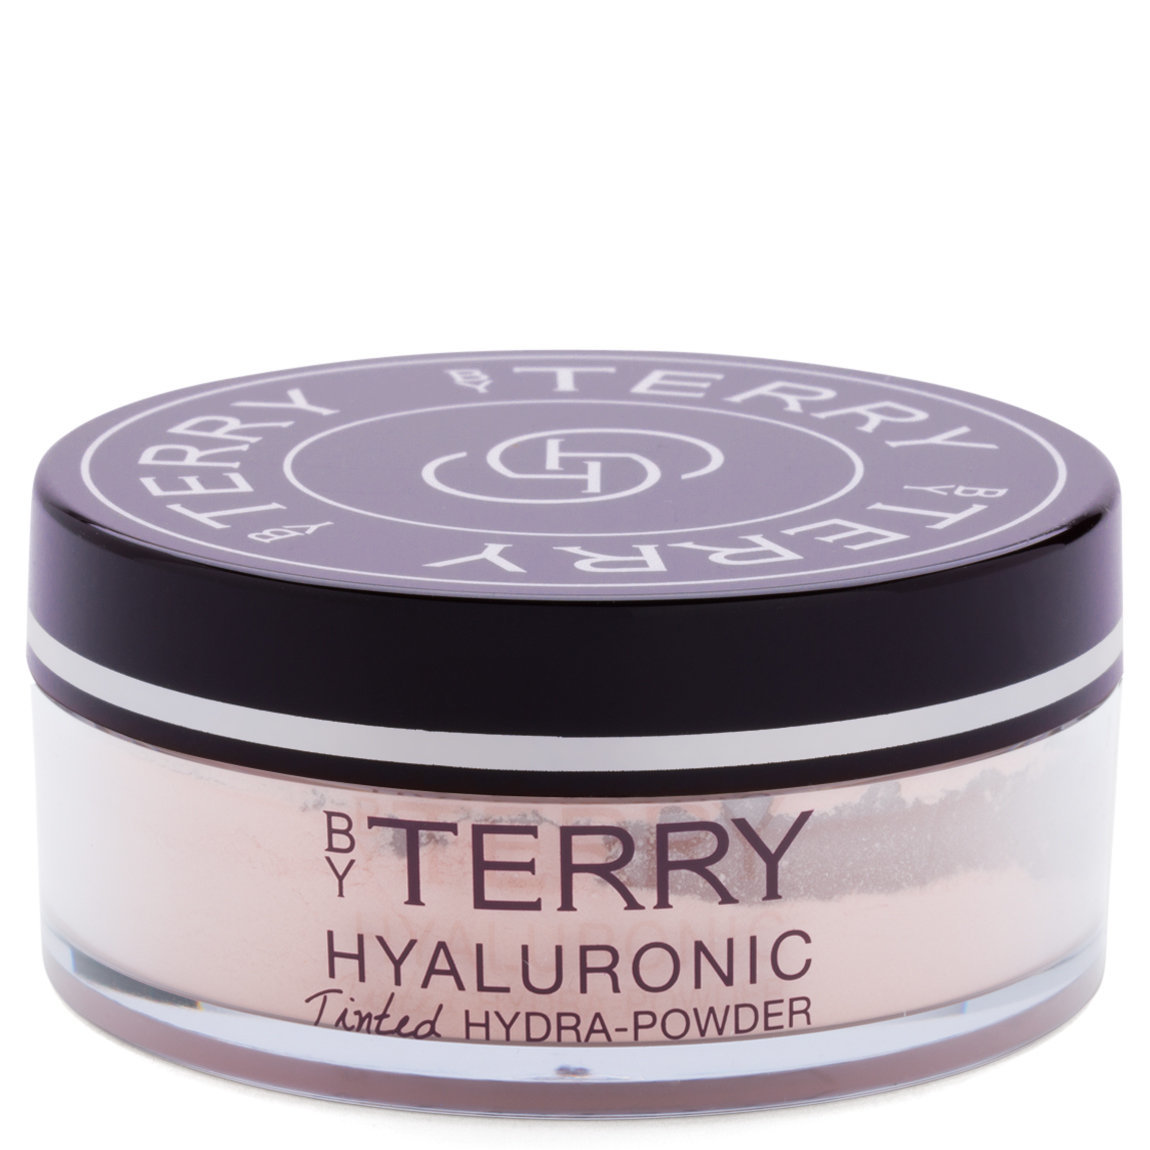 BY TERRY Hyaluronic Tinted Hydra-Powder N1 Rosy Light